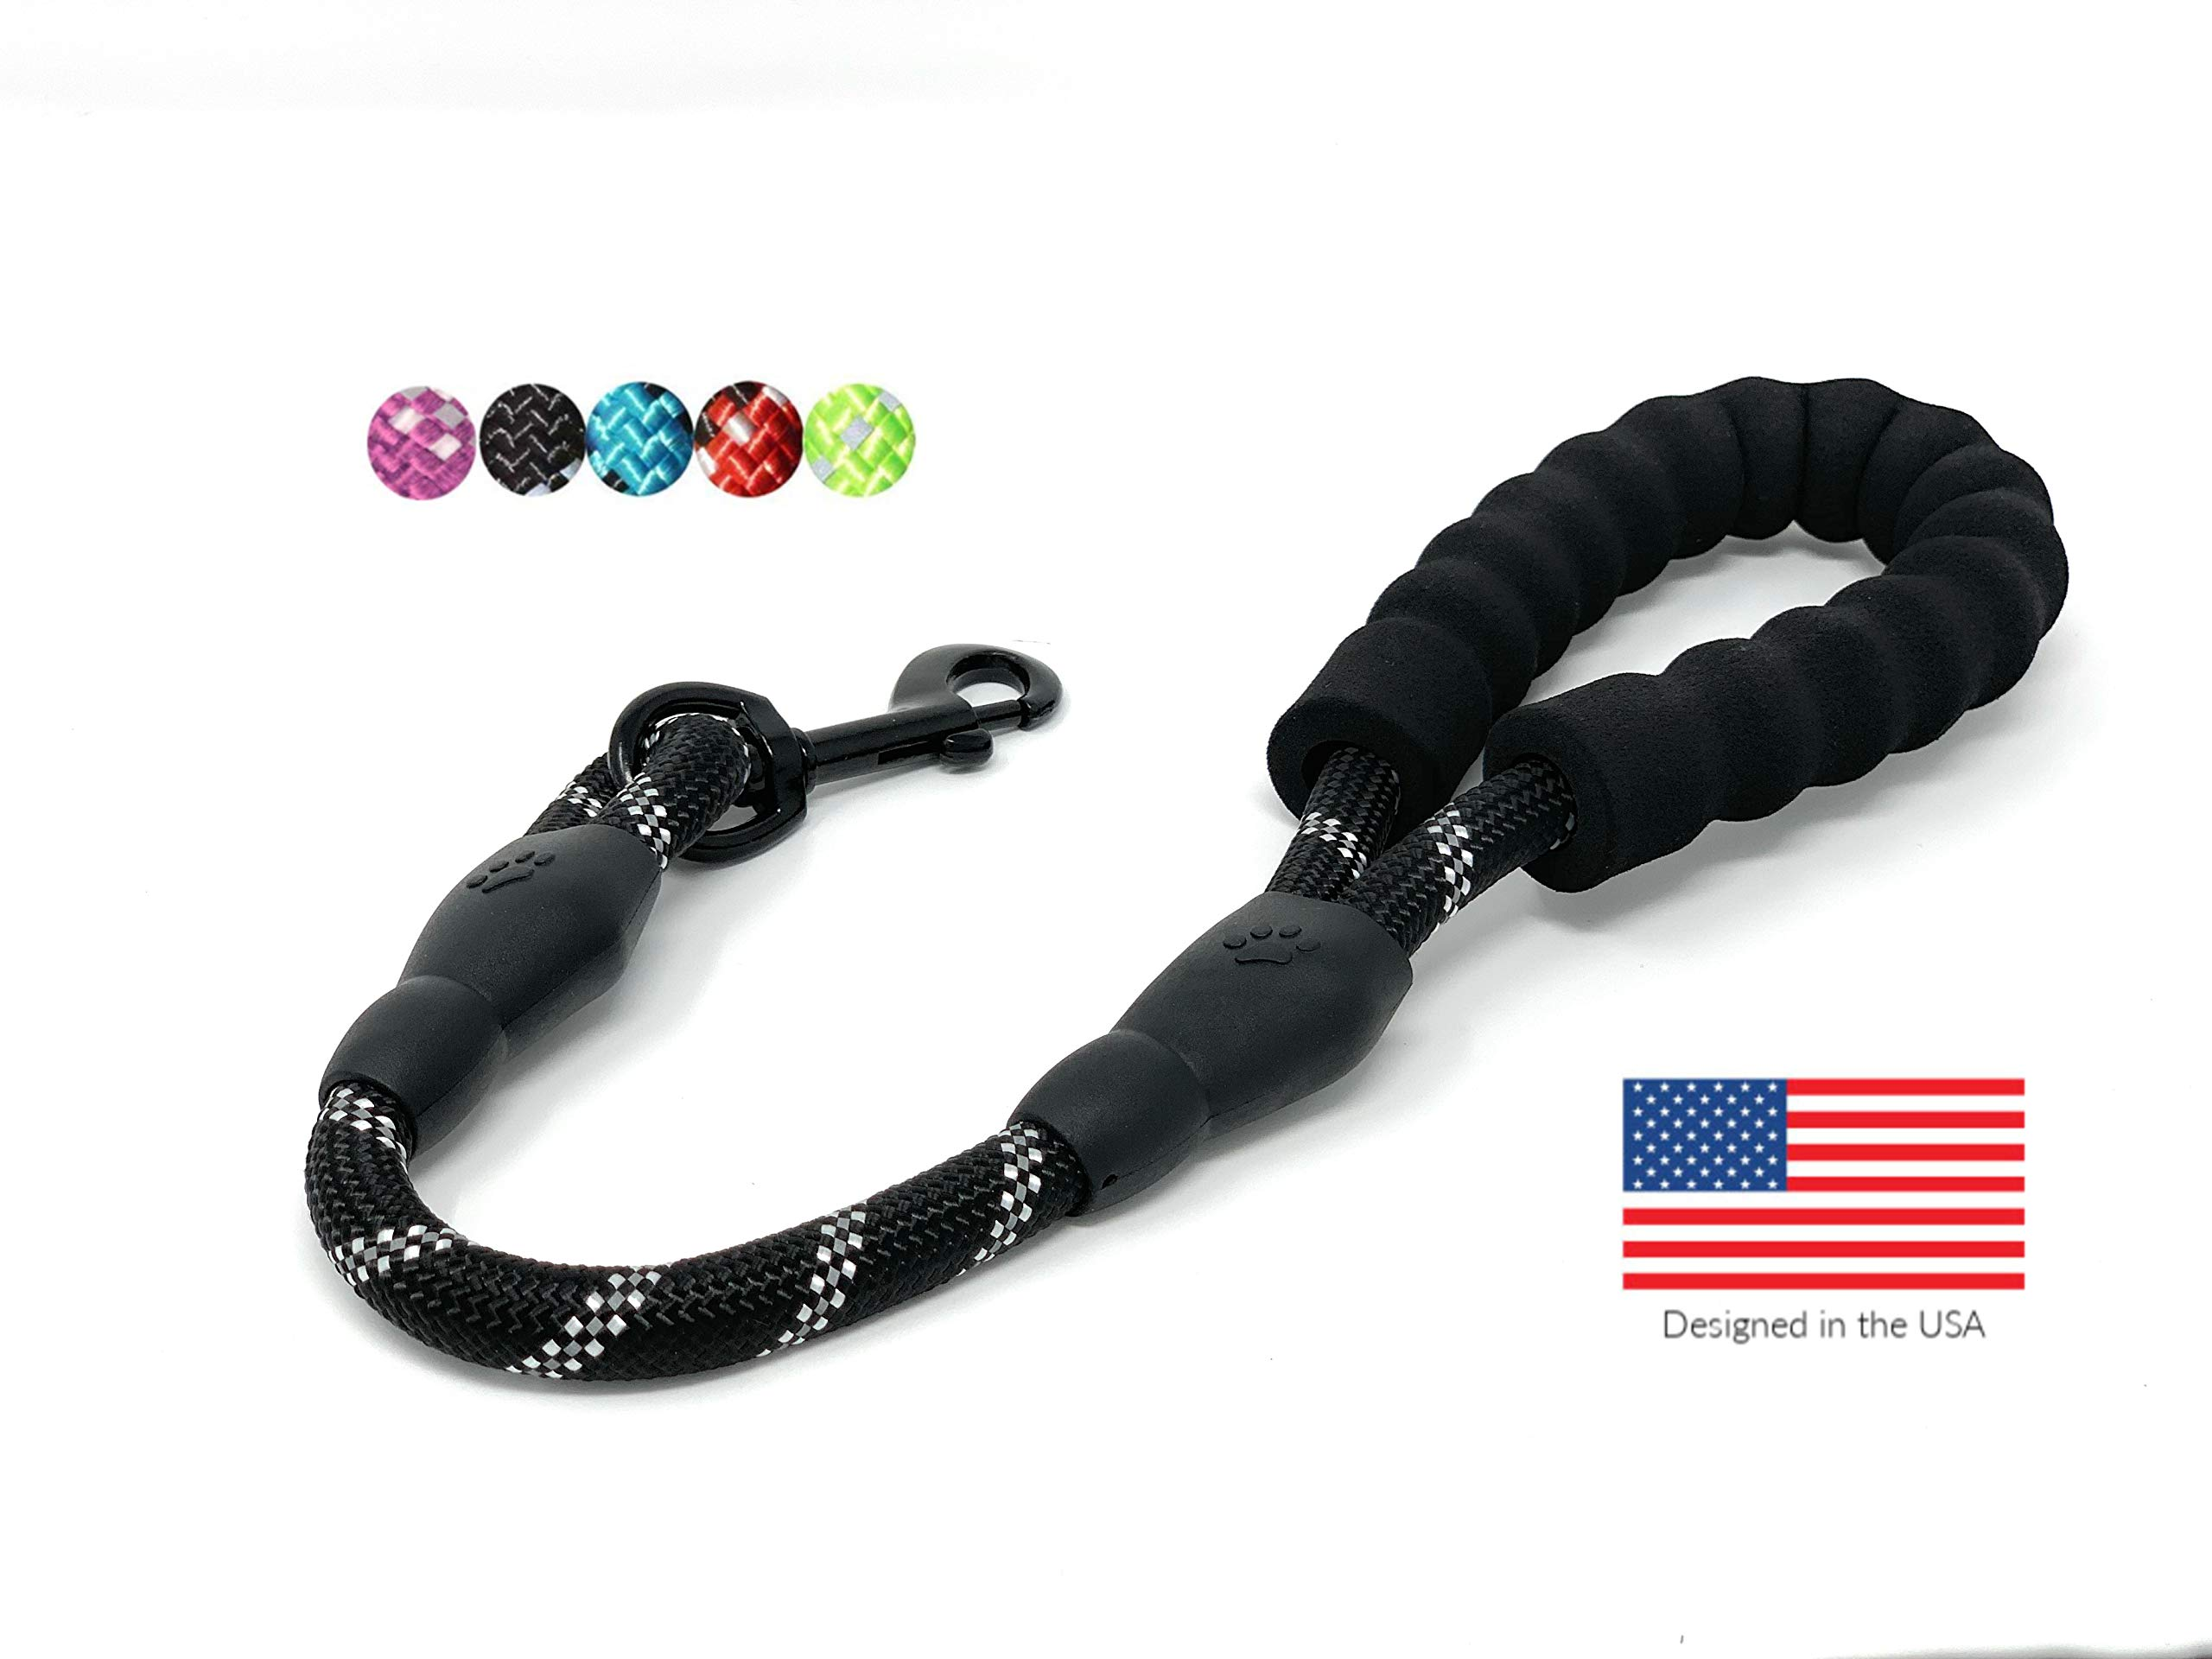 STJ Company Short Training Leash for Dogs | Teach Them to Walk Without Pulling | 18'' Rock Climbing Rope with Swivel Metal Snap-Bolt | Take Your Pup Near Traffic and Crowds (Black)